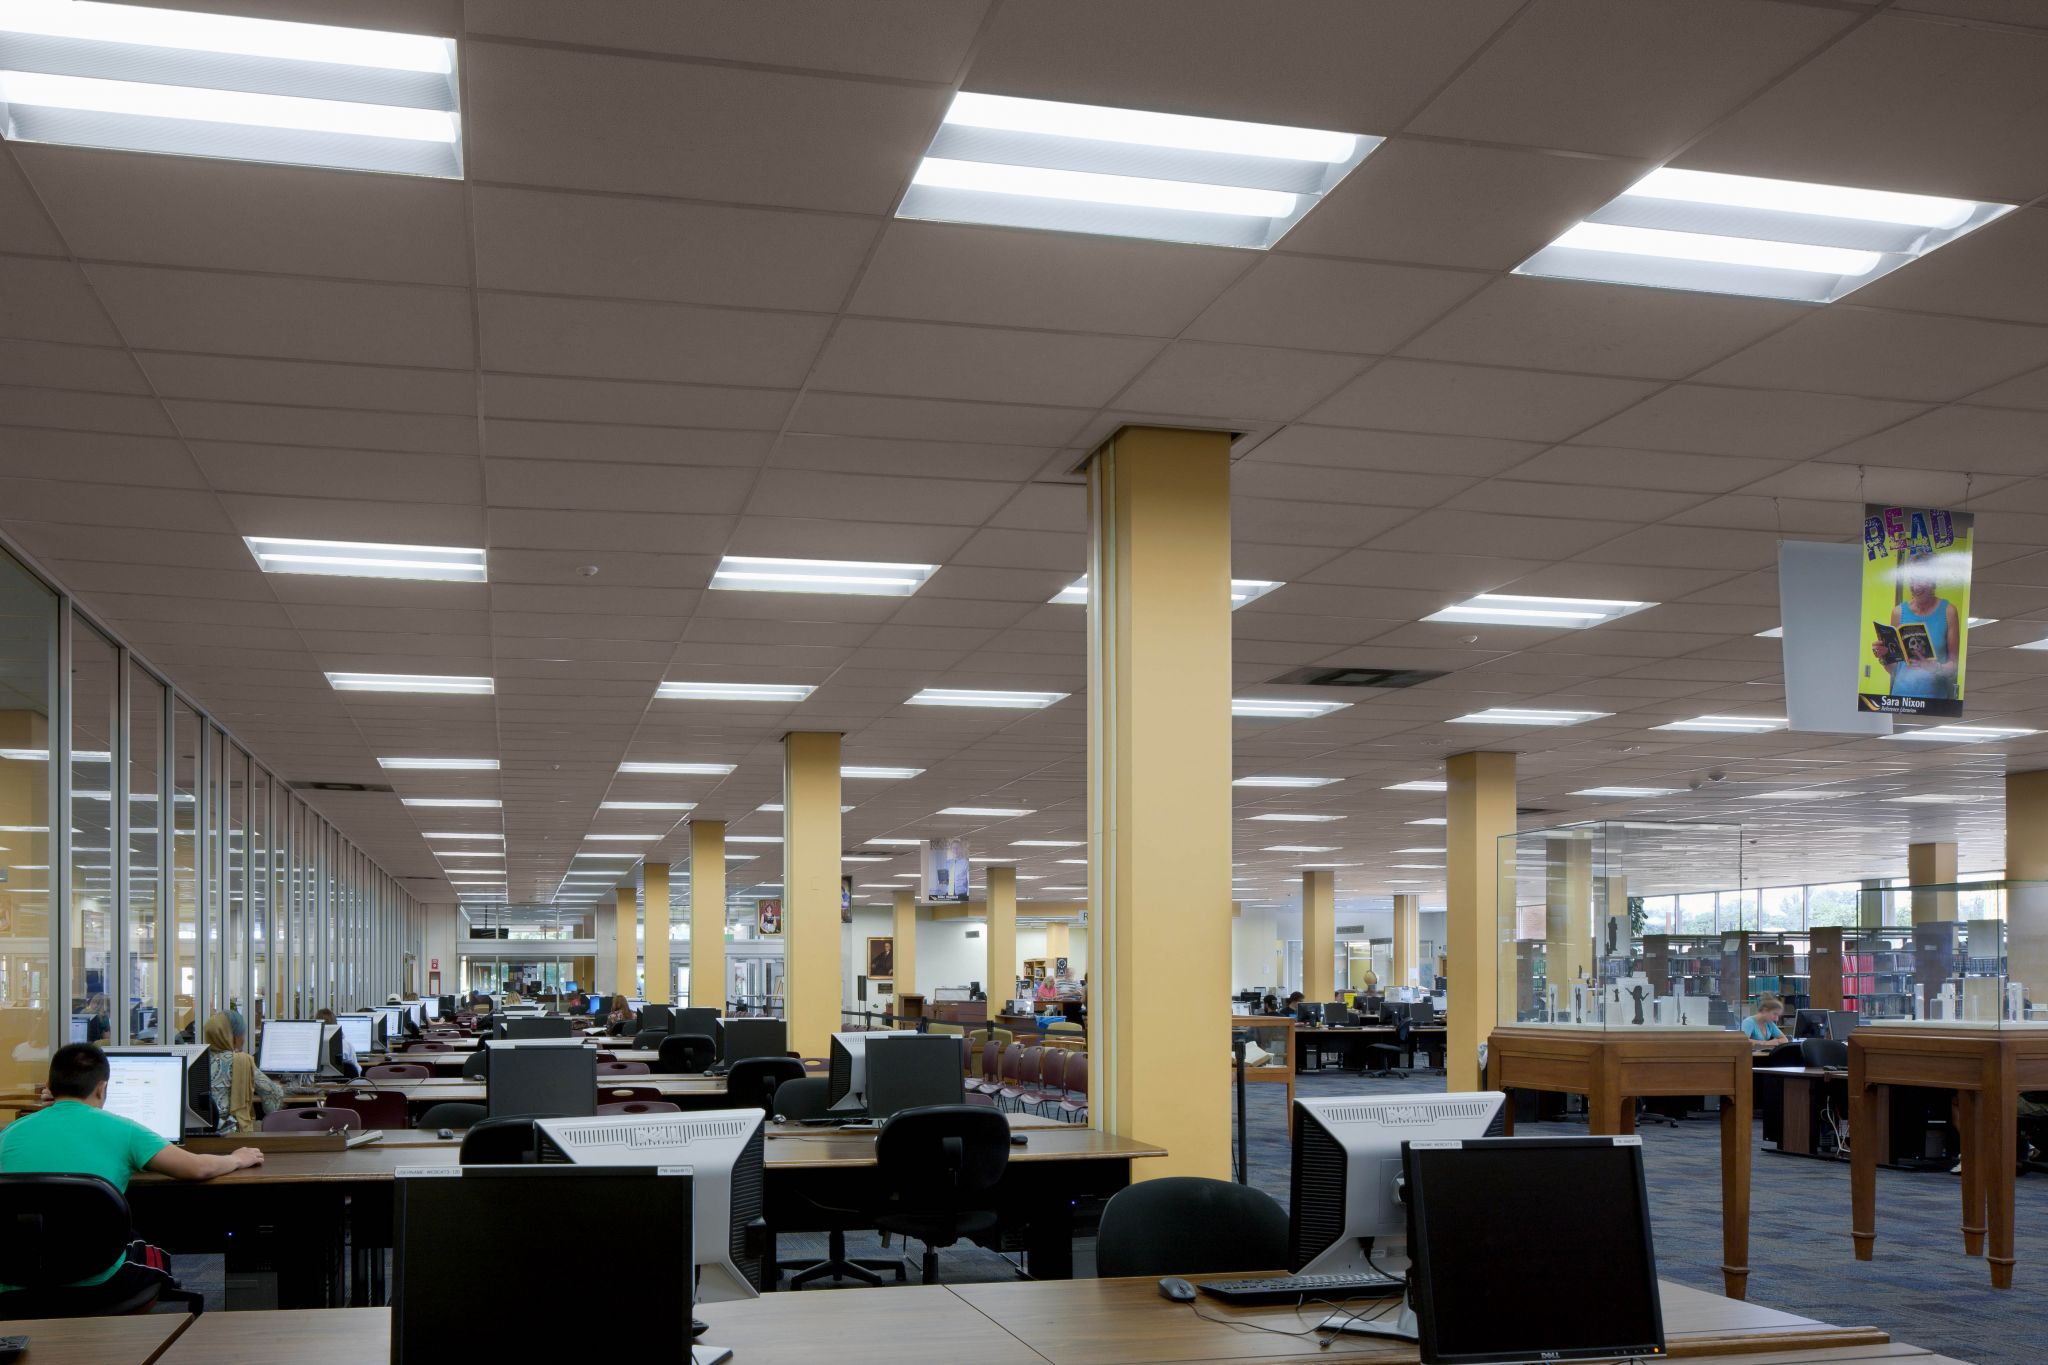 The high-performance fluorescent fixtures installed in the Towson University library enable $200 to $300 daily reductions in energy costs. This savings amounts to more than $100,000 annually.